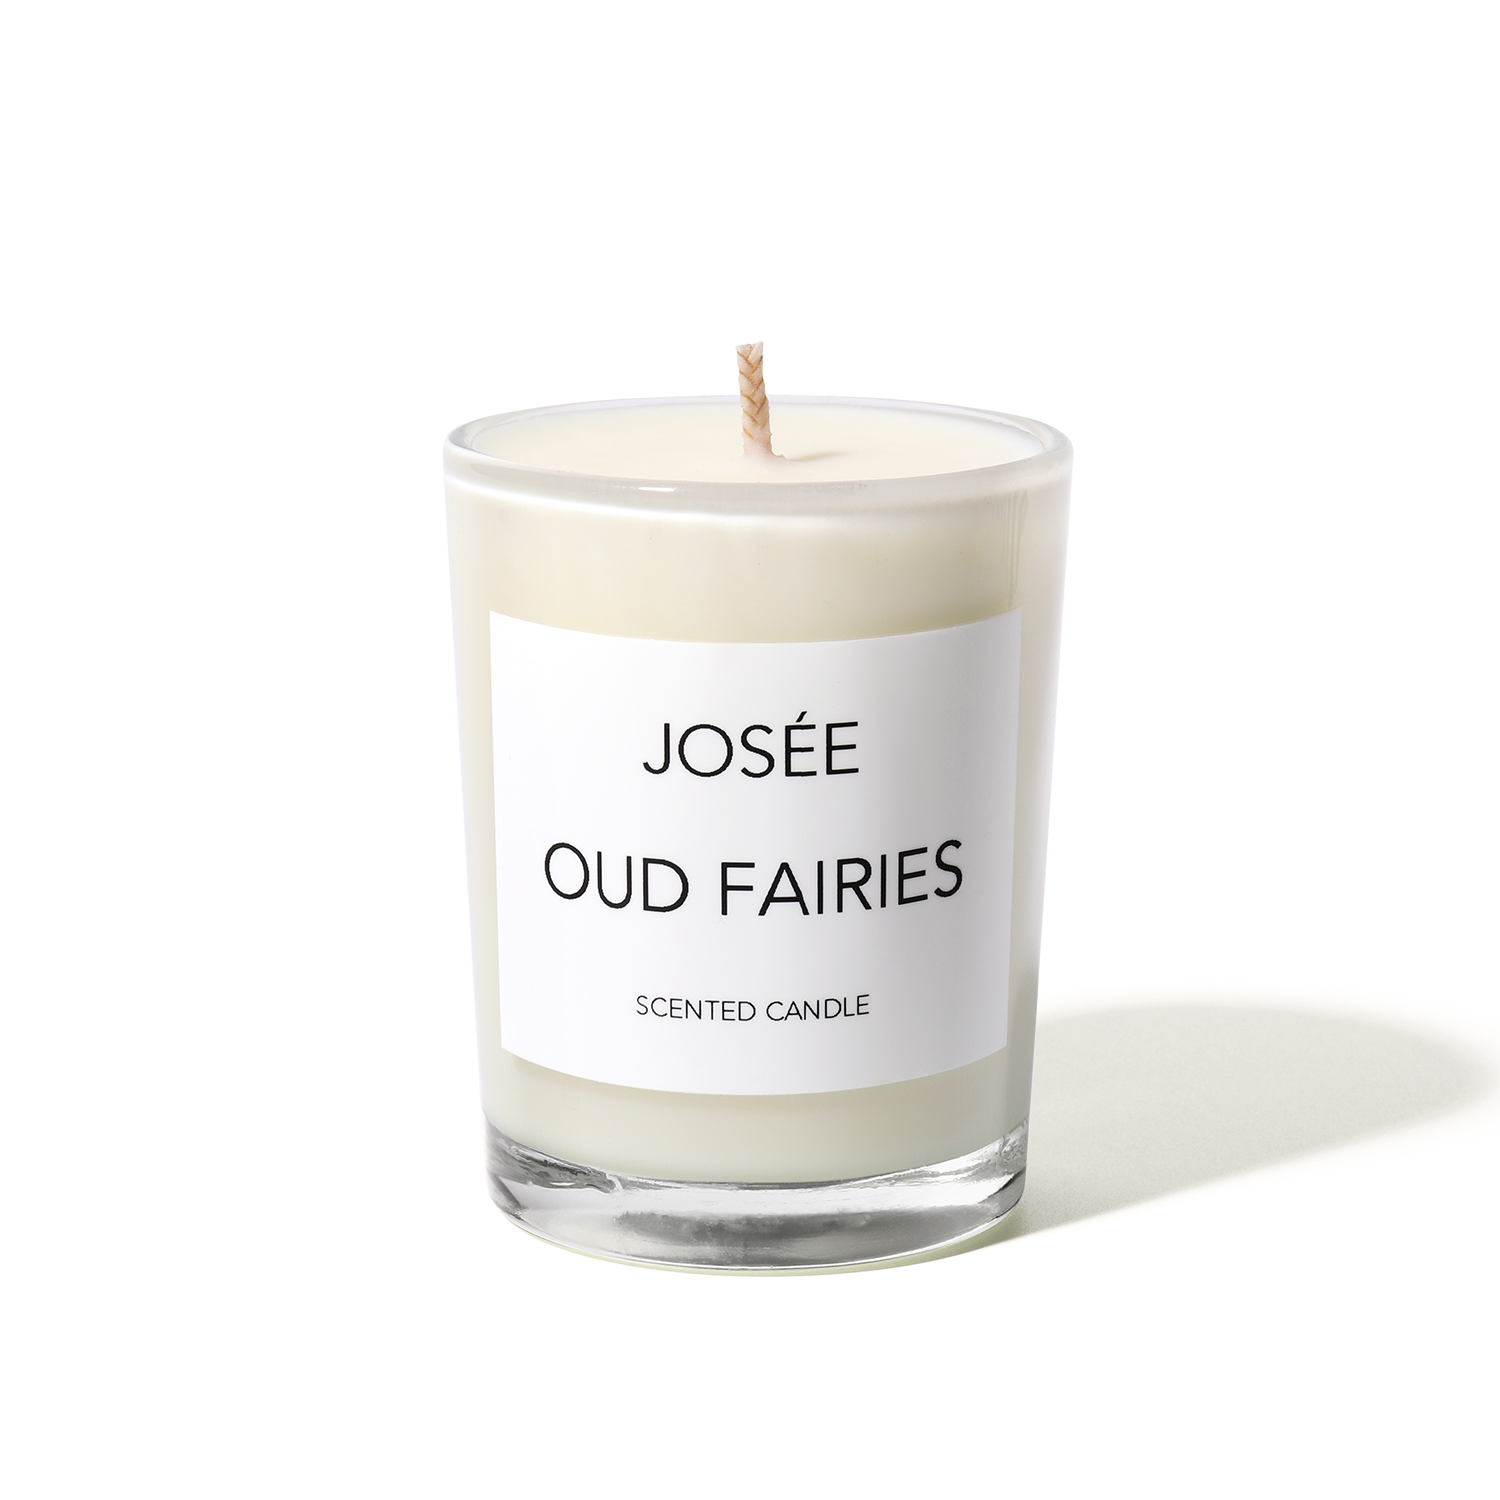 Oud Fairies Scented Candle 70g - JOSÉE Organic Beauty & Perfume